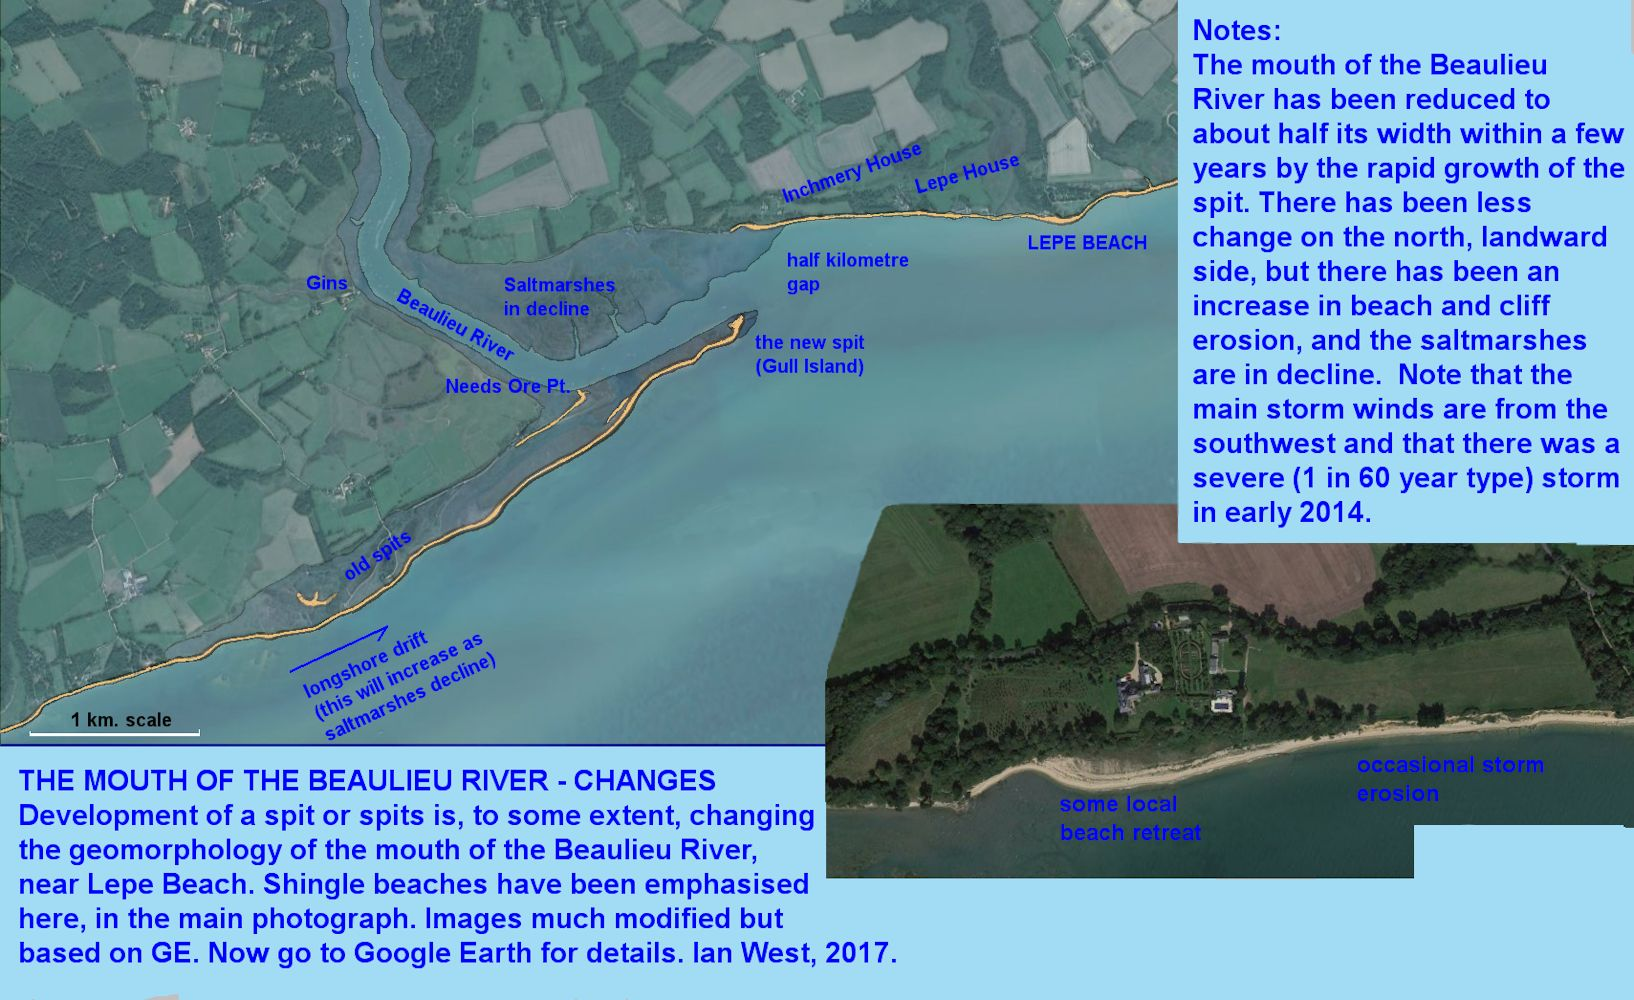 Recent changes in the spit at the mouth of the Beaulieu River, near Inchmery and Lepe Beach, Hampshire, 1st May 2017